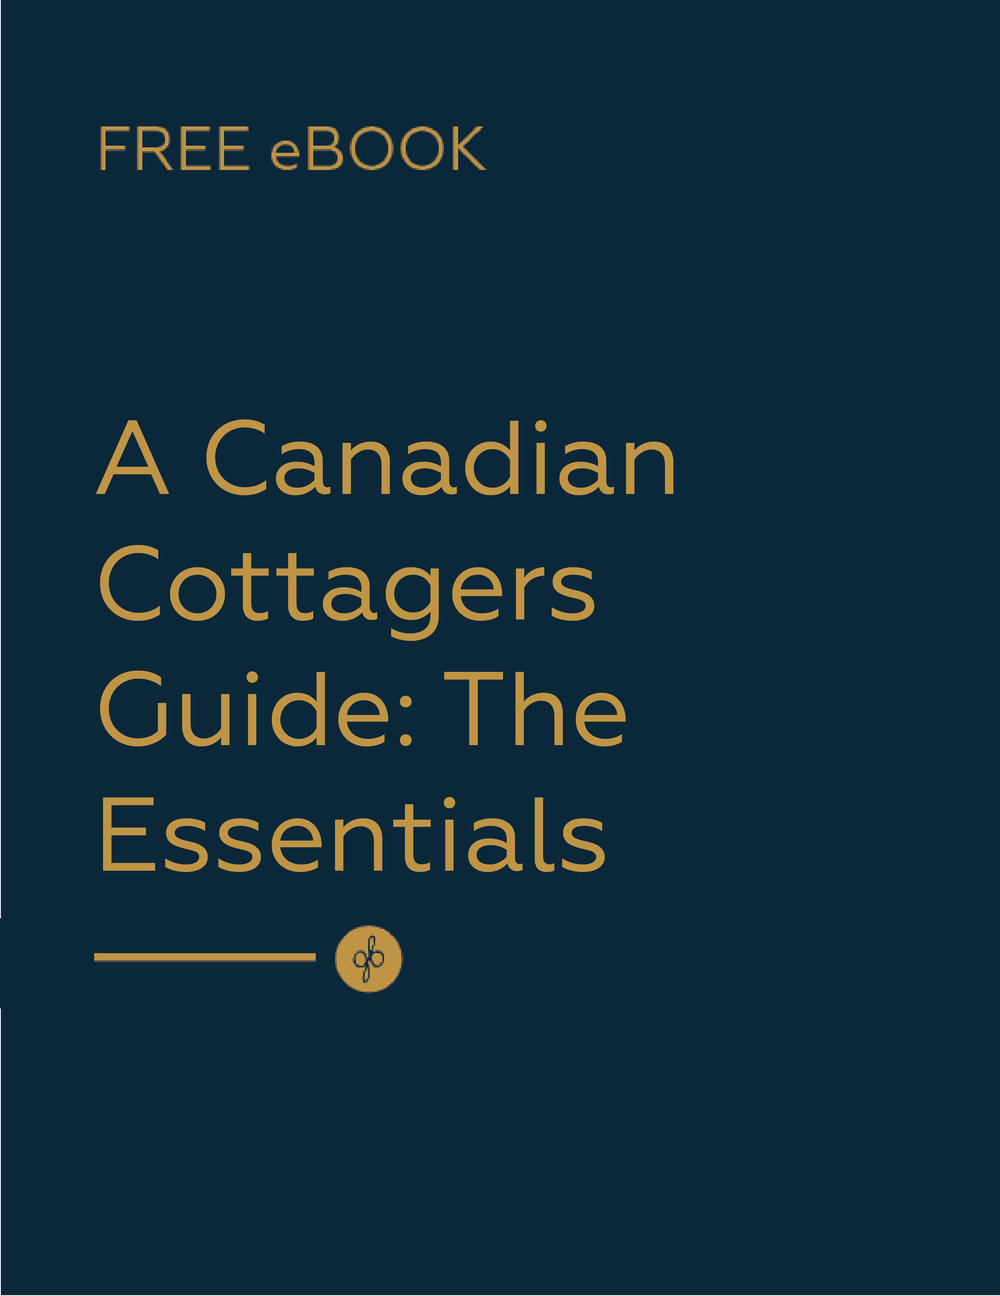 canadian cottagers guide free ebook